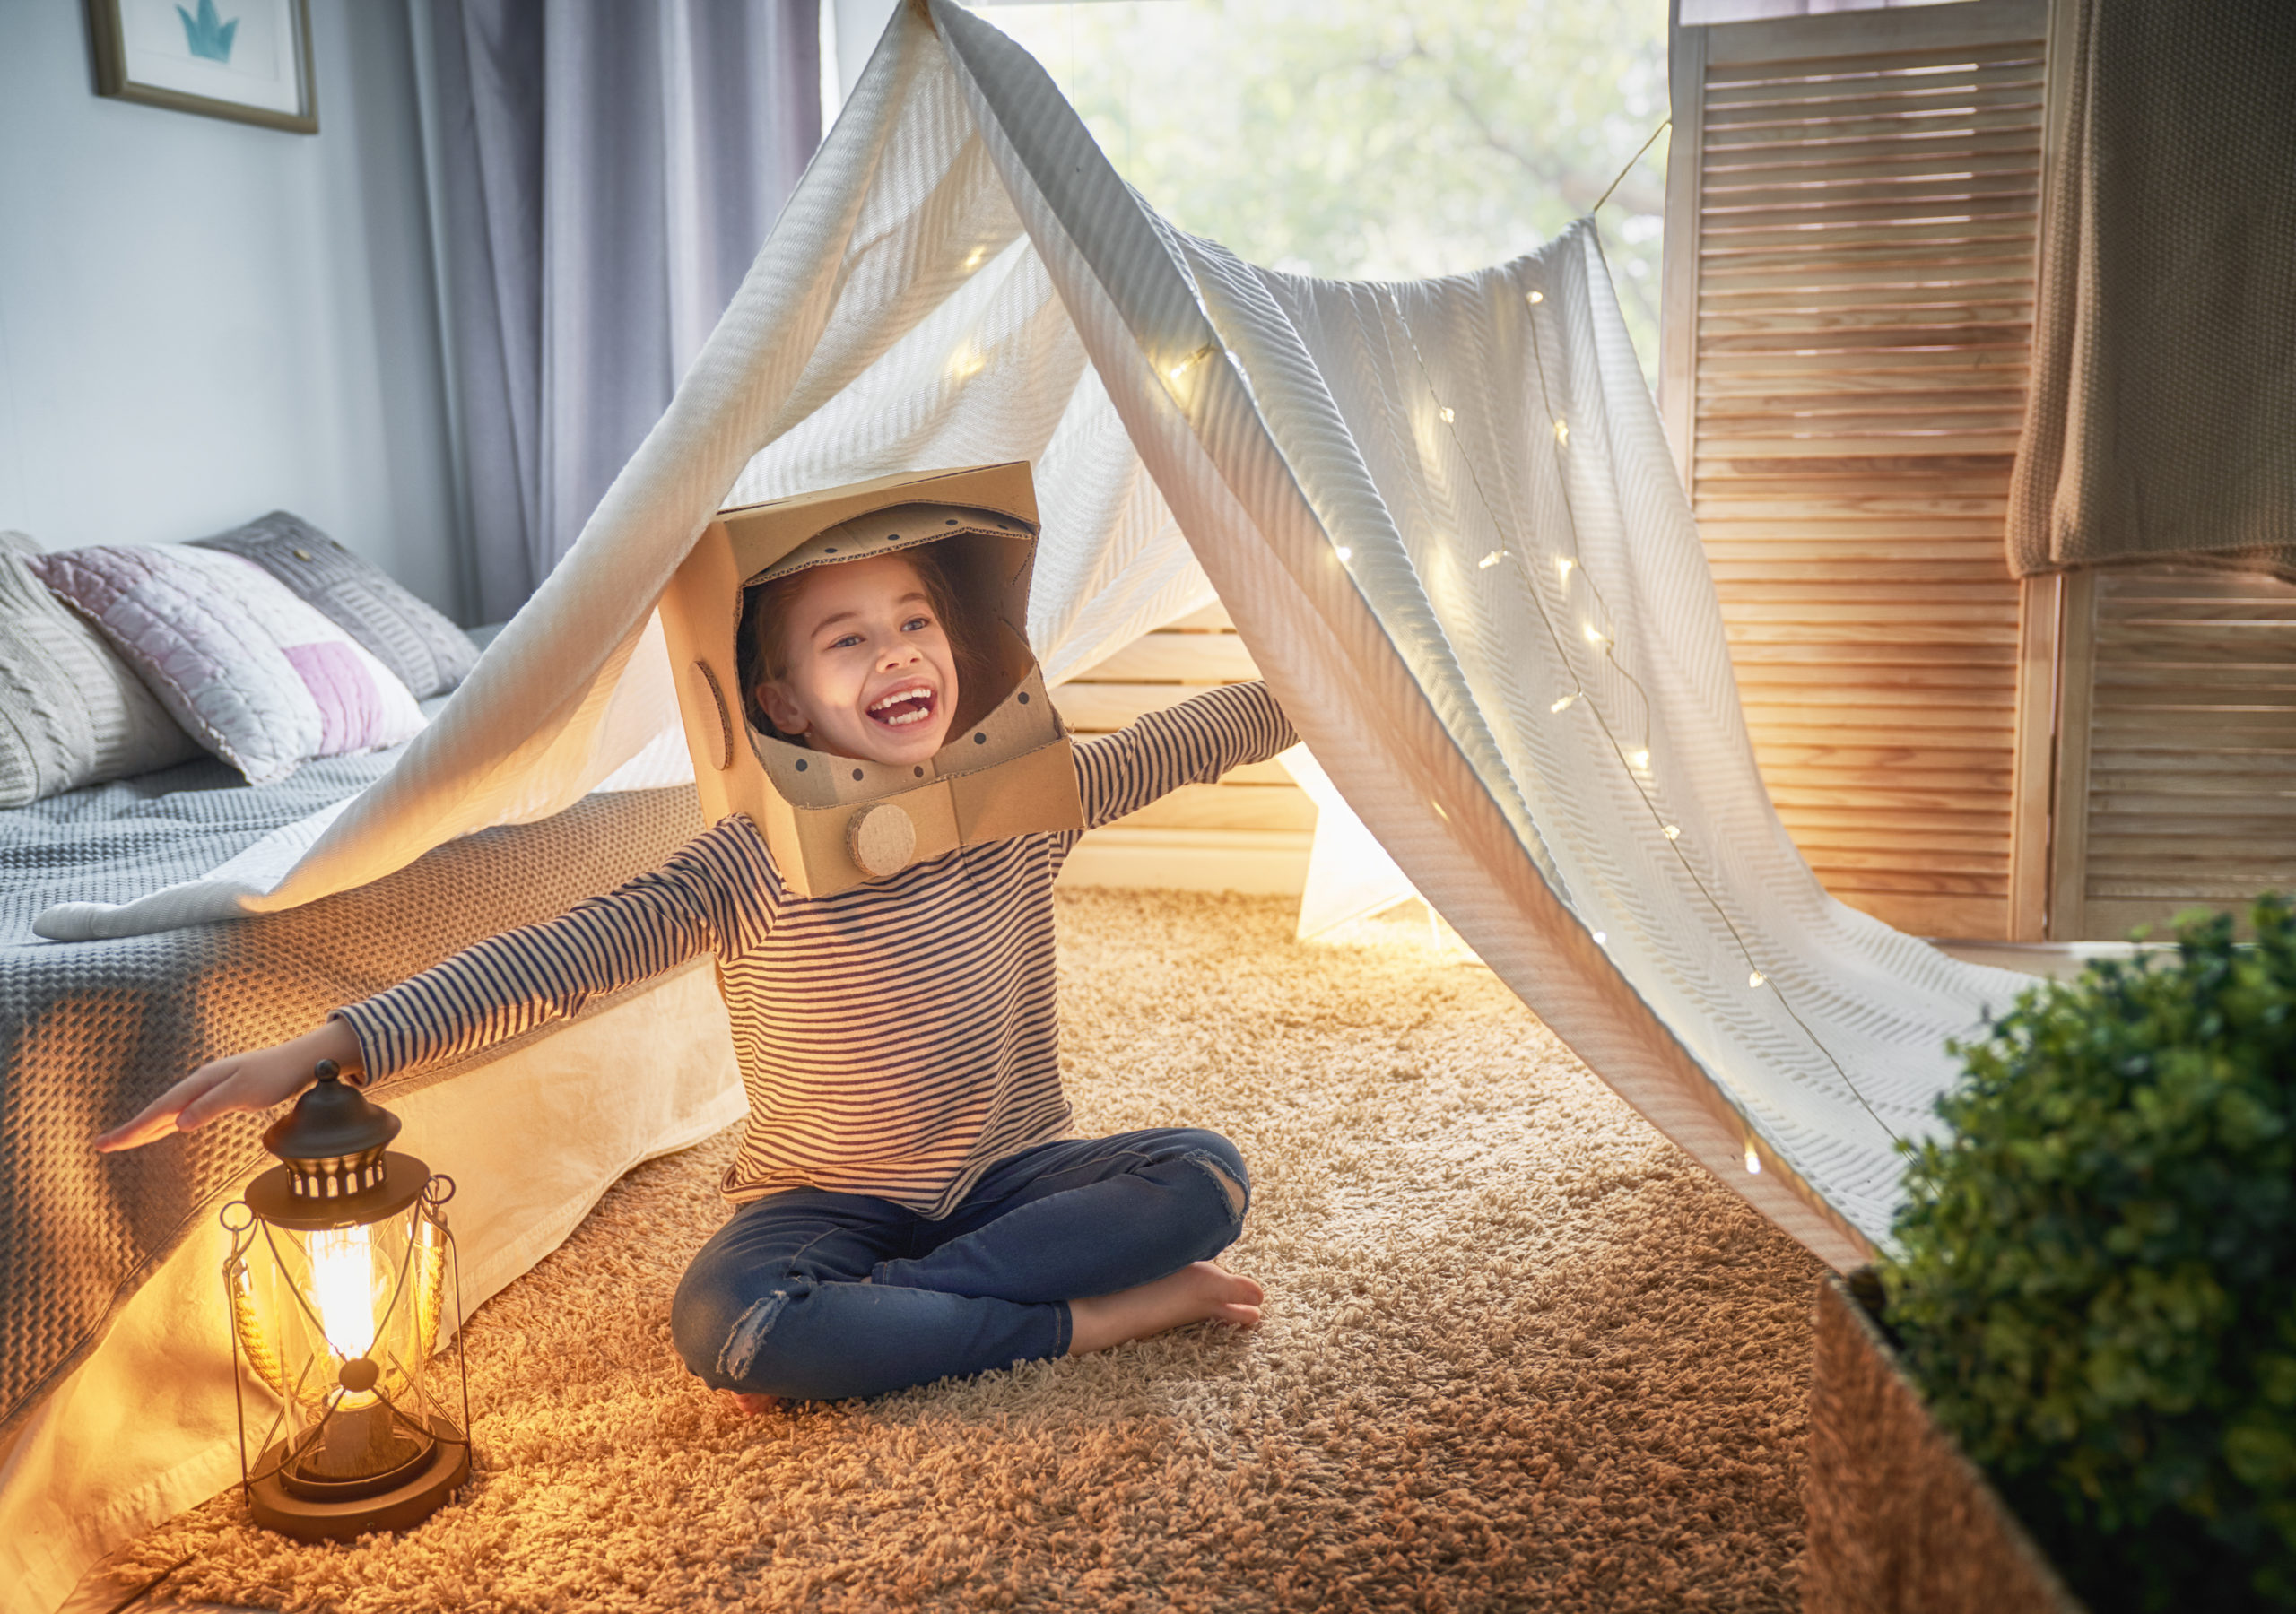 Child in an astronaut costume dreaming of becoming a spacemen. Happy kid playing in tent. Funny lovely girl having fun in children room.